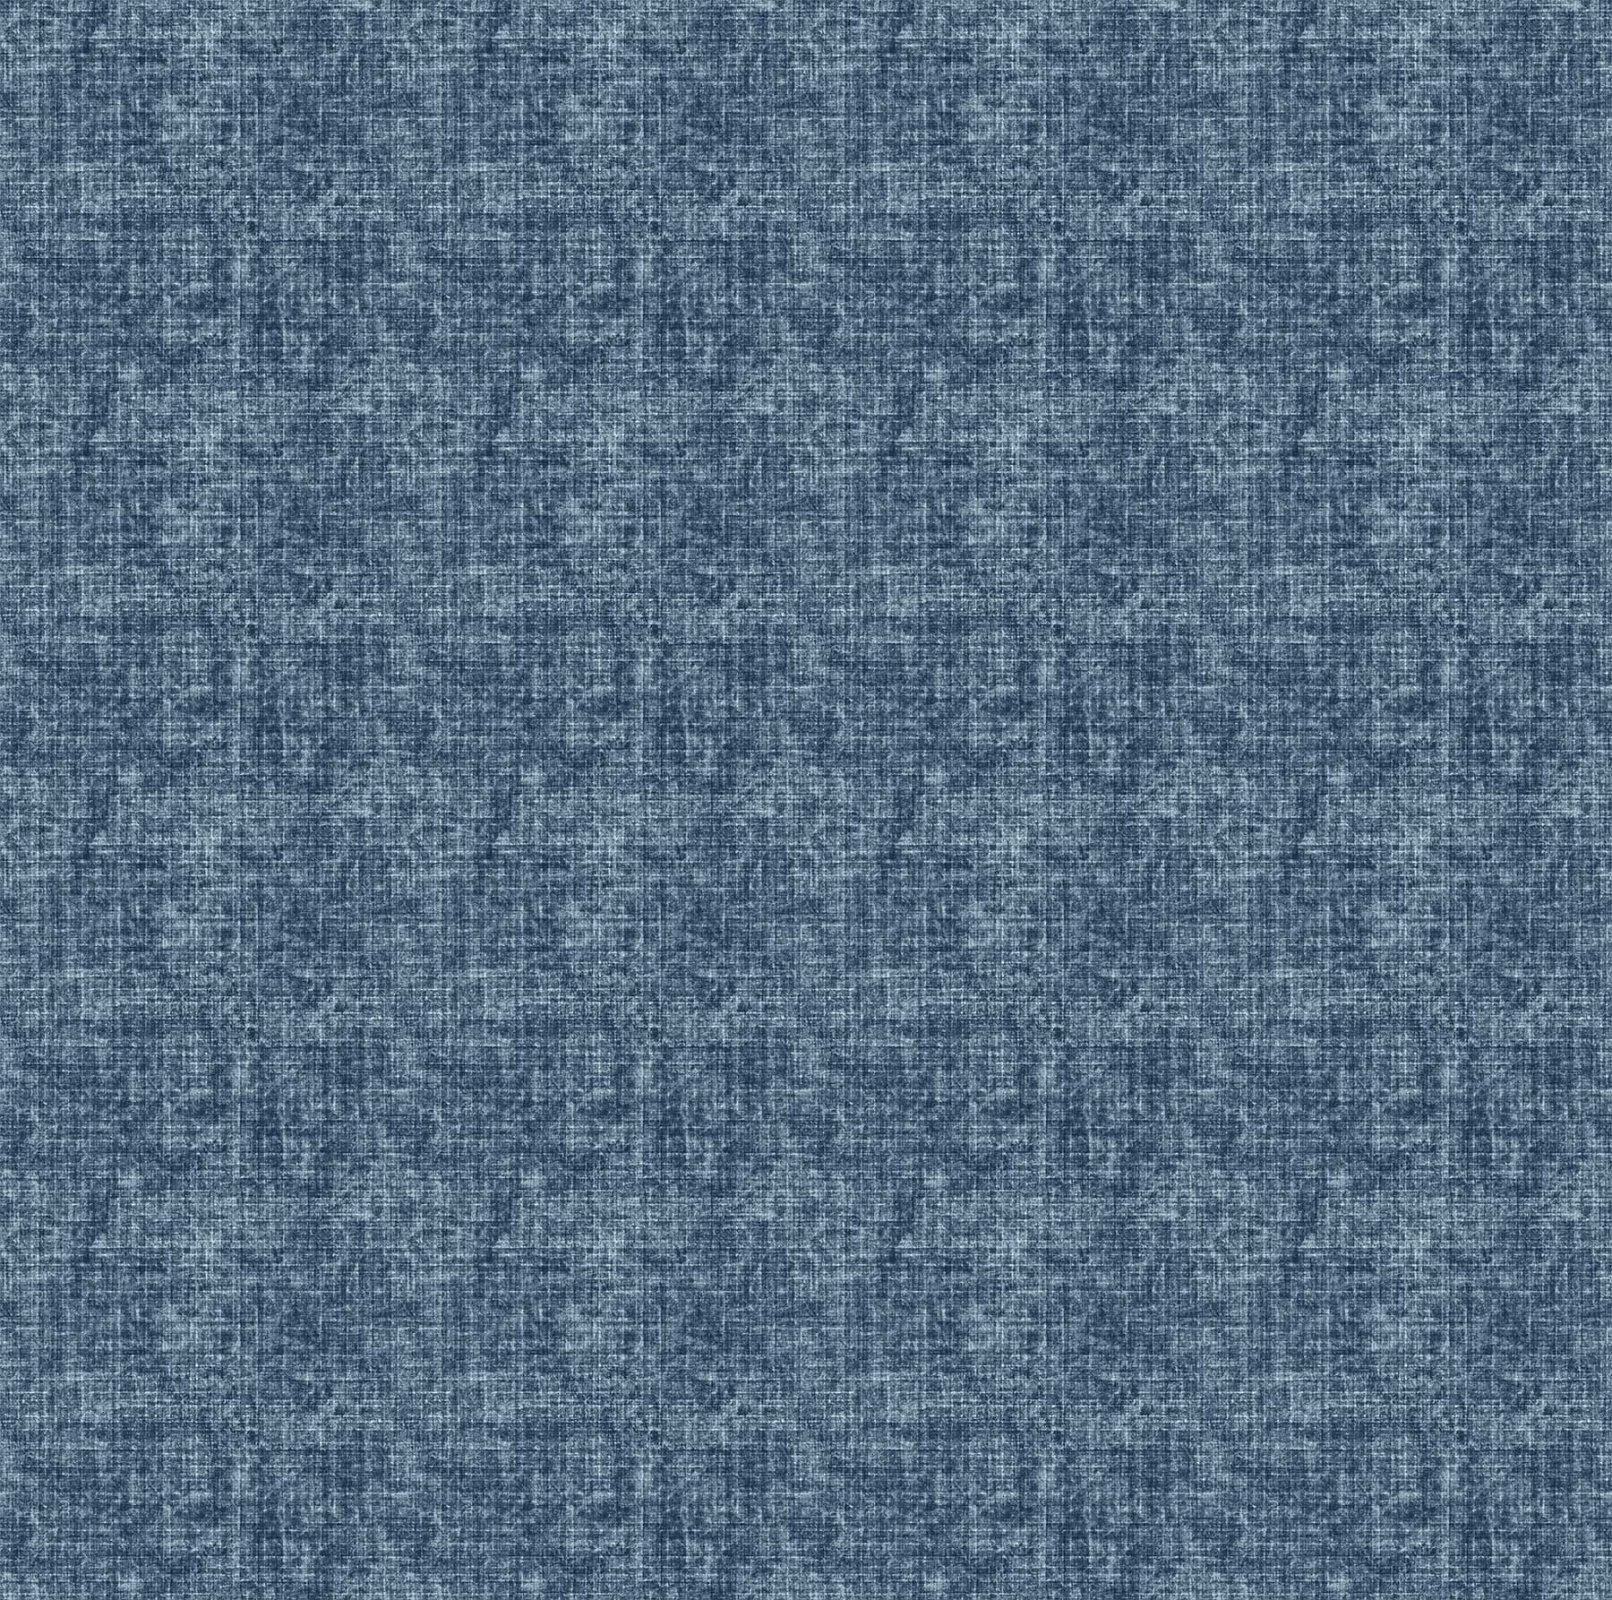 City Lights Linen Texture Dk. Blue